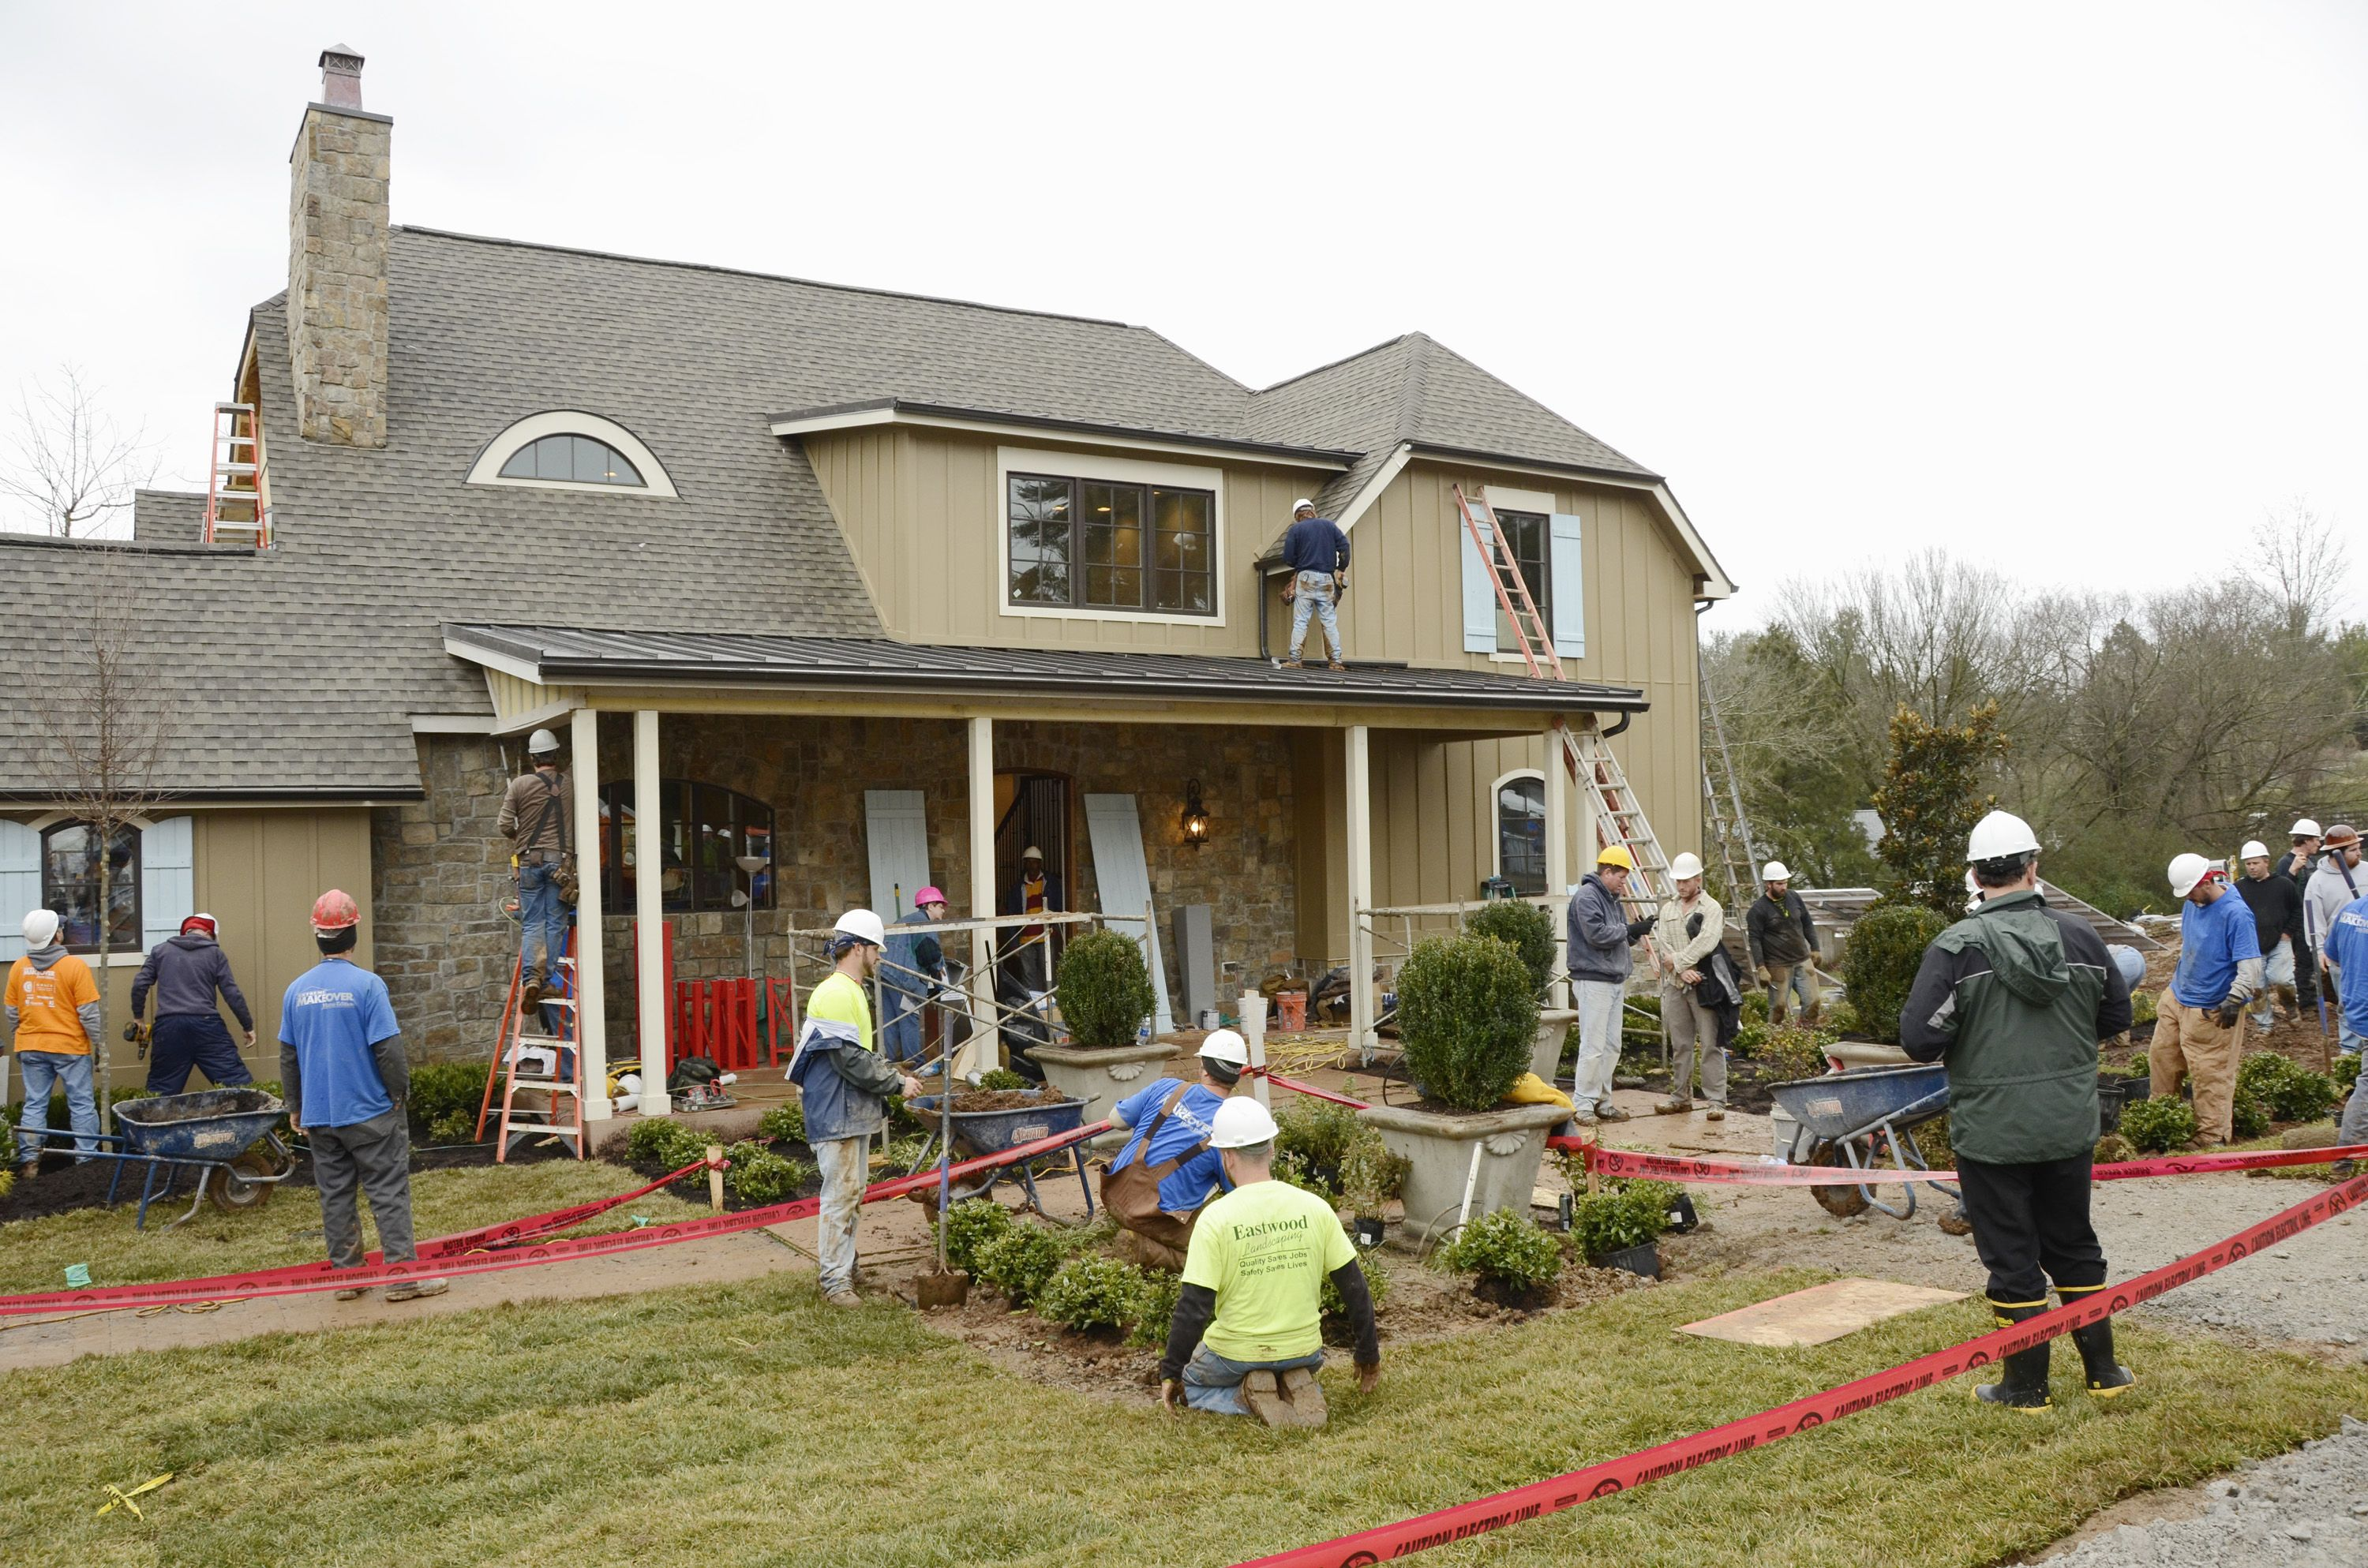 HGTV's Extreme Makeover: Home Edition Reboot Is Now Casting Families